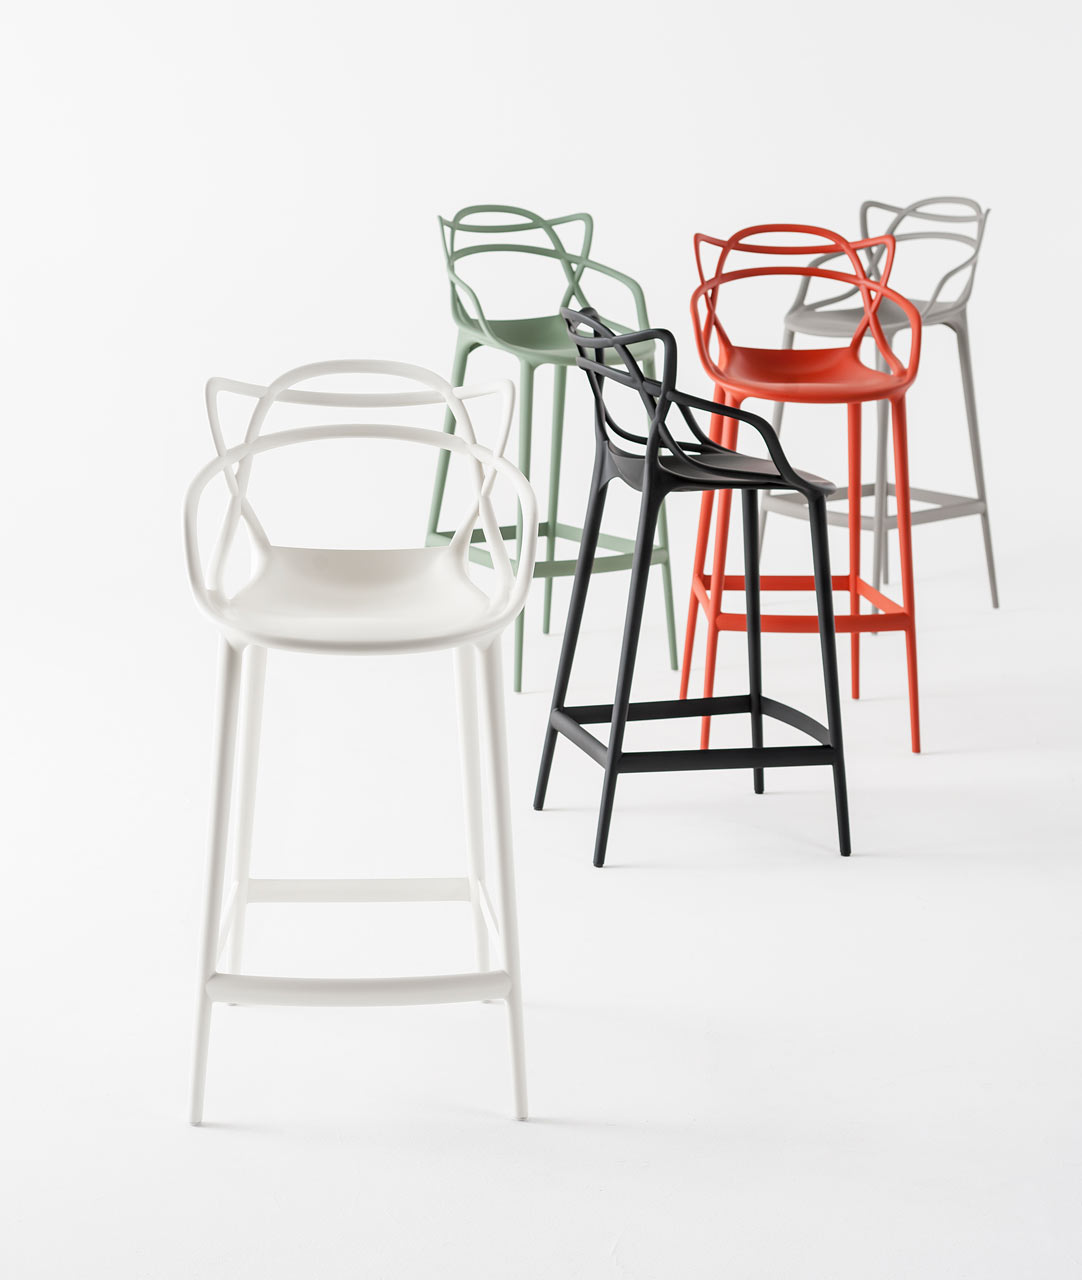 MASTERS-stool-for-Kartell-eugeni-quitllet-Starck-4